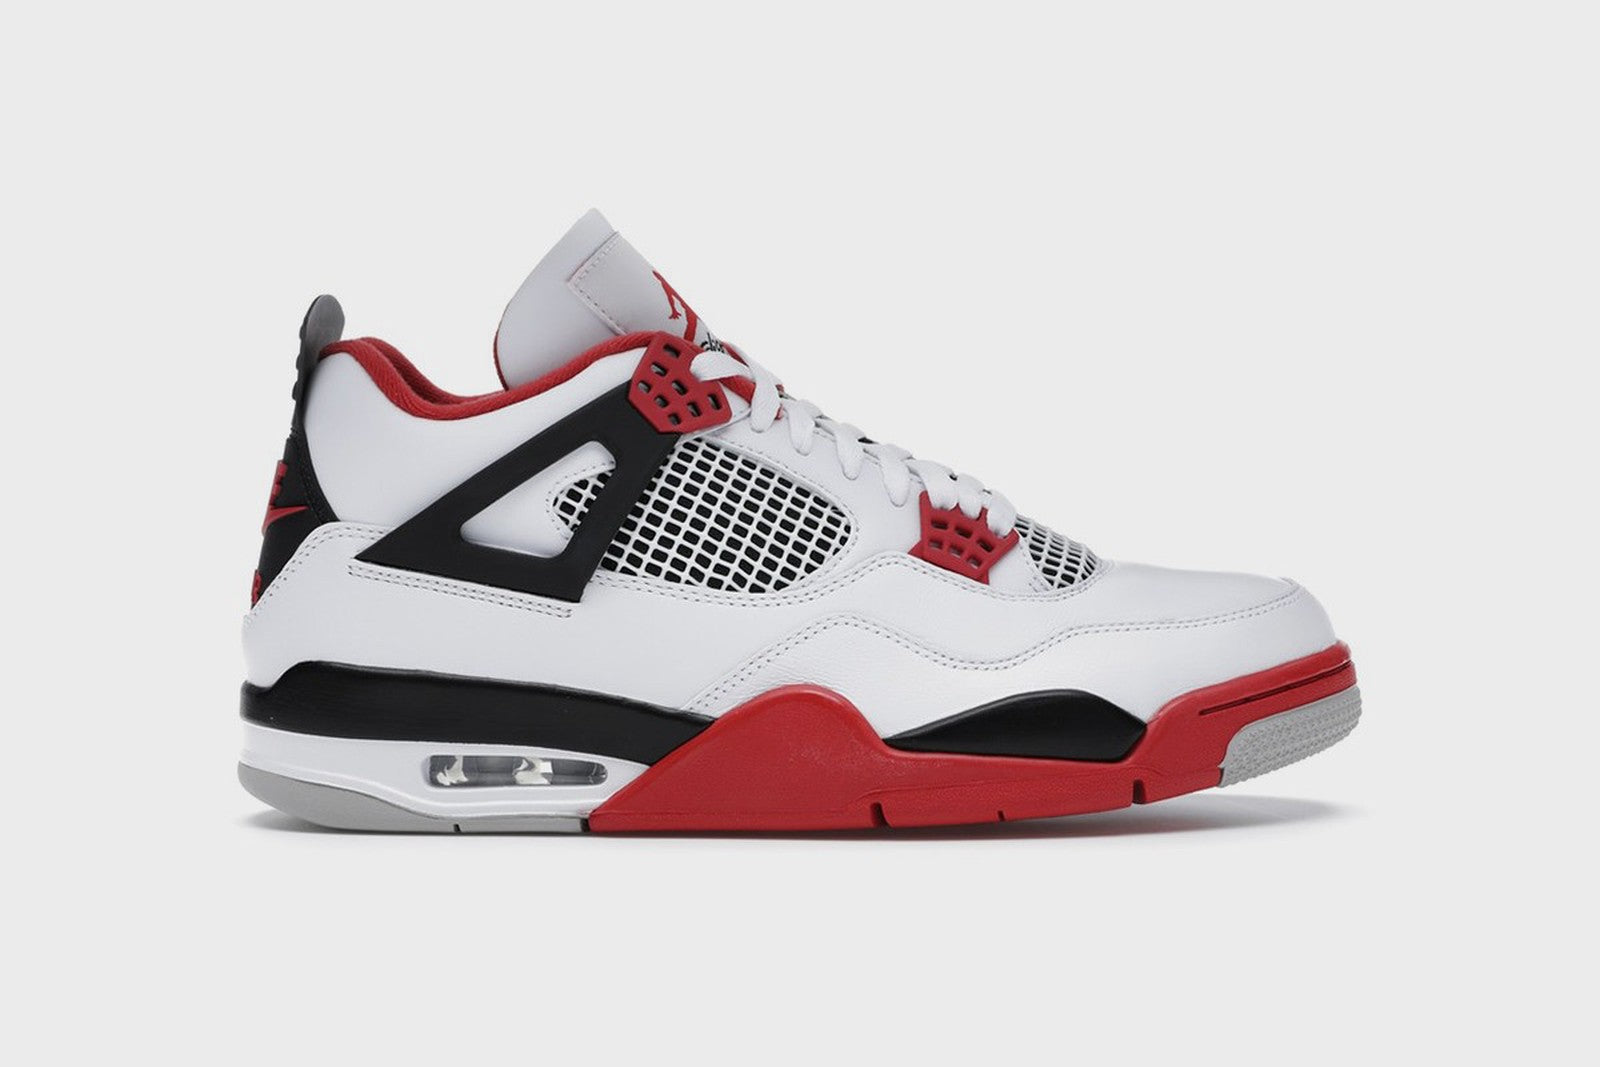 Air Jordan 4 Fire Red(2020)